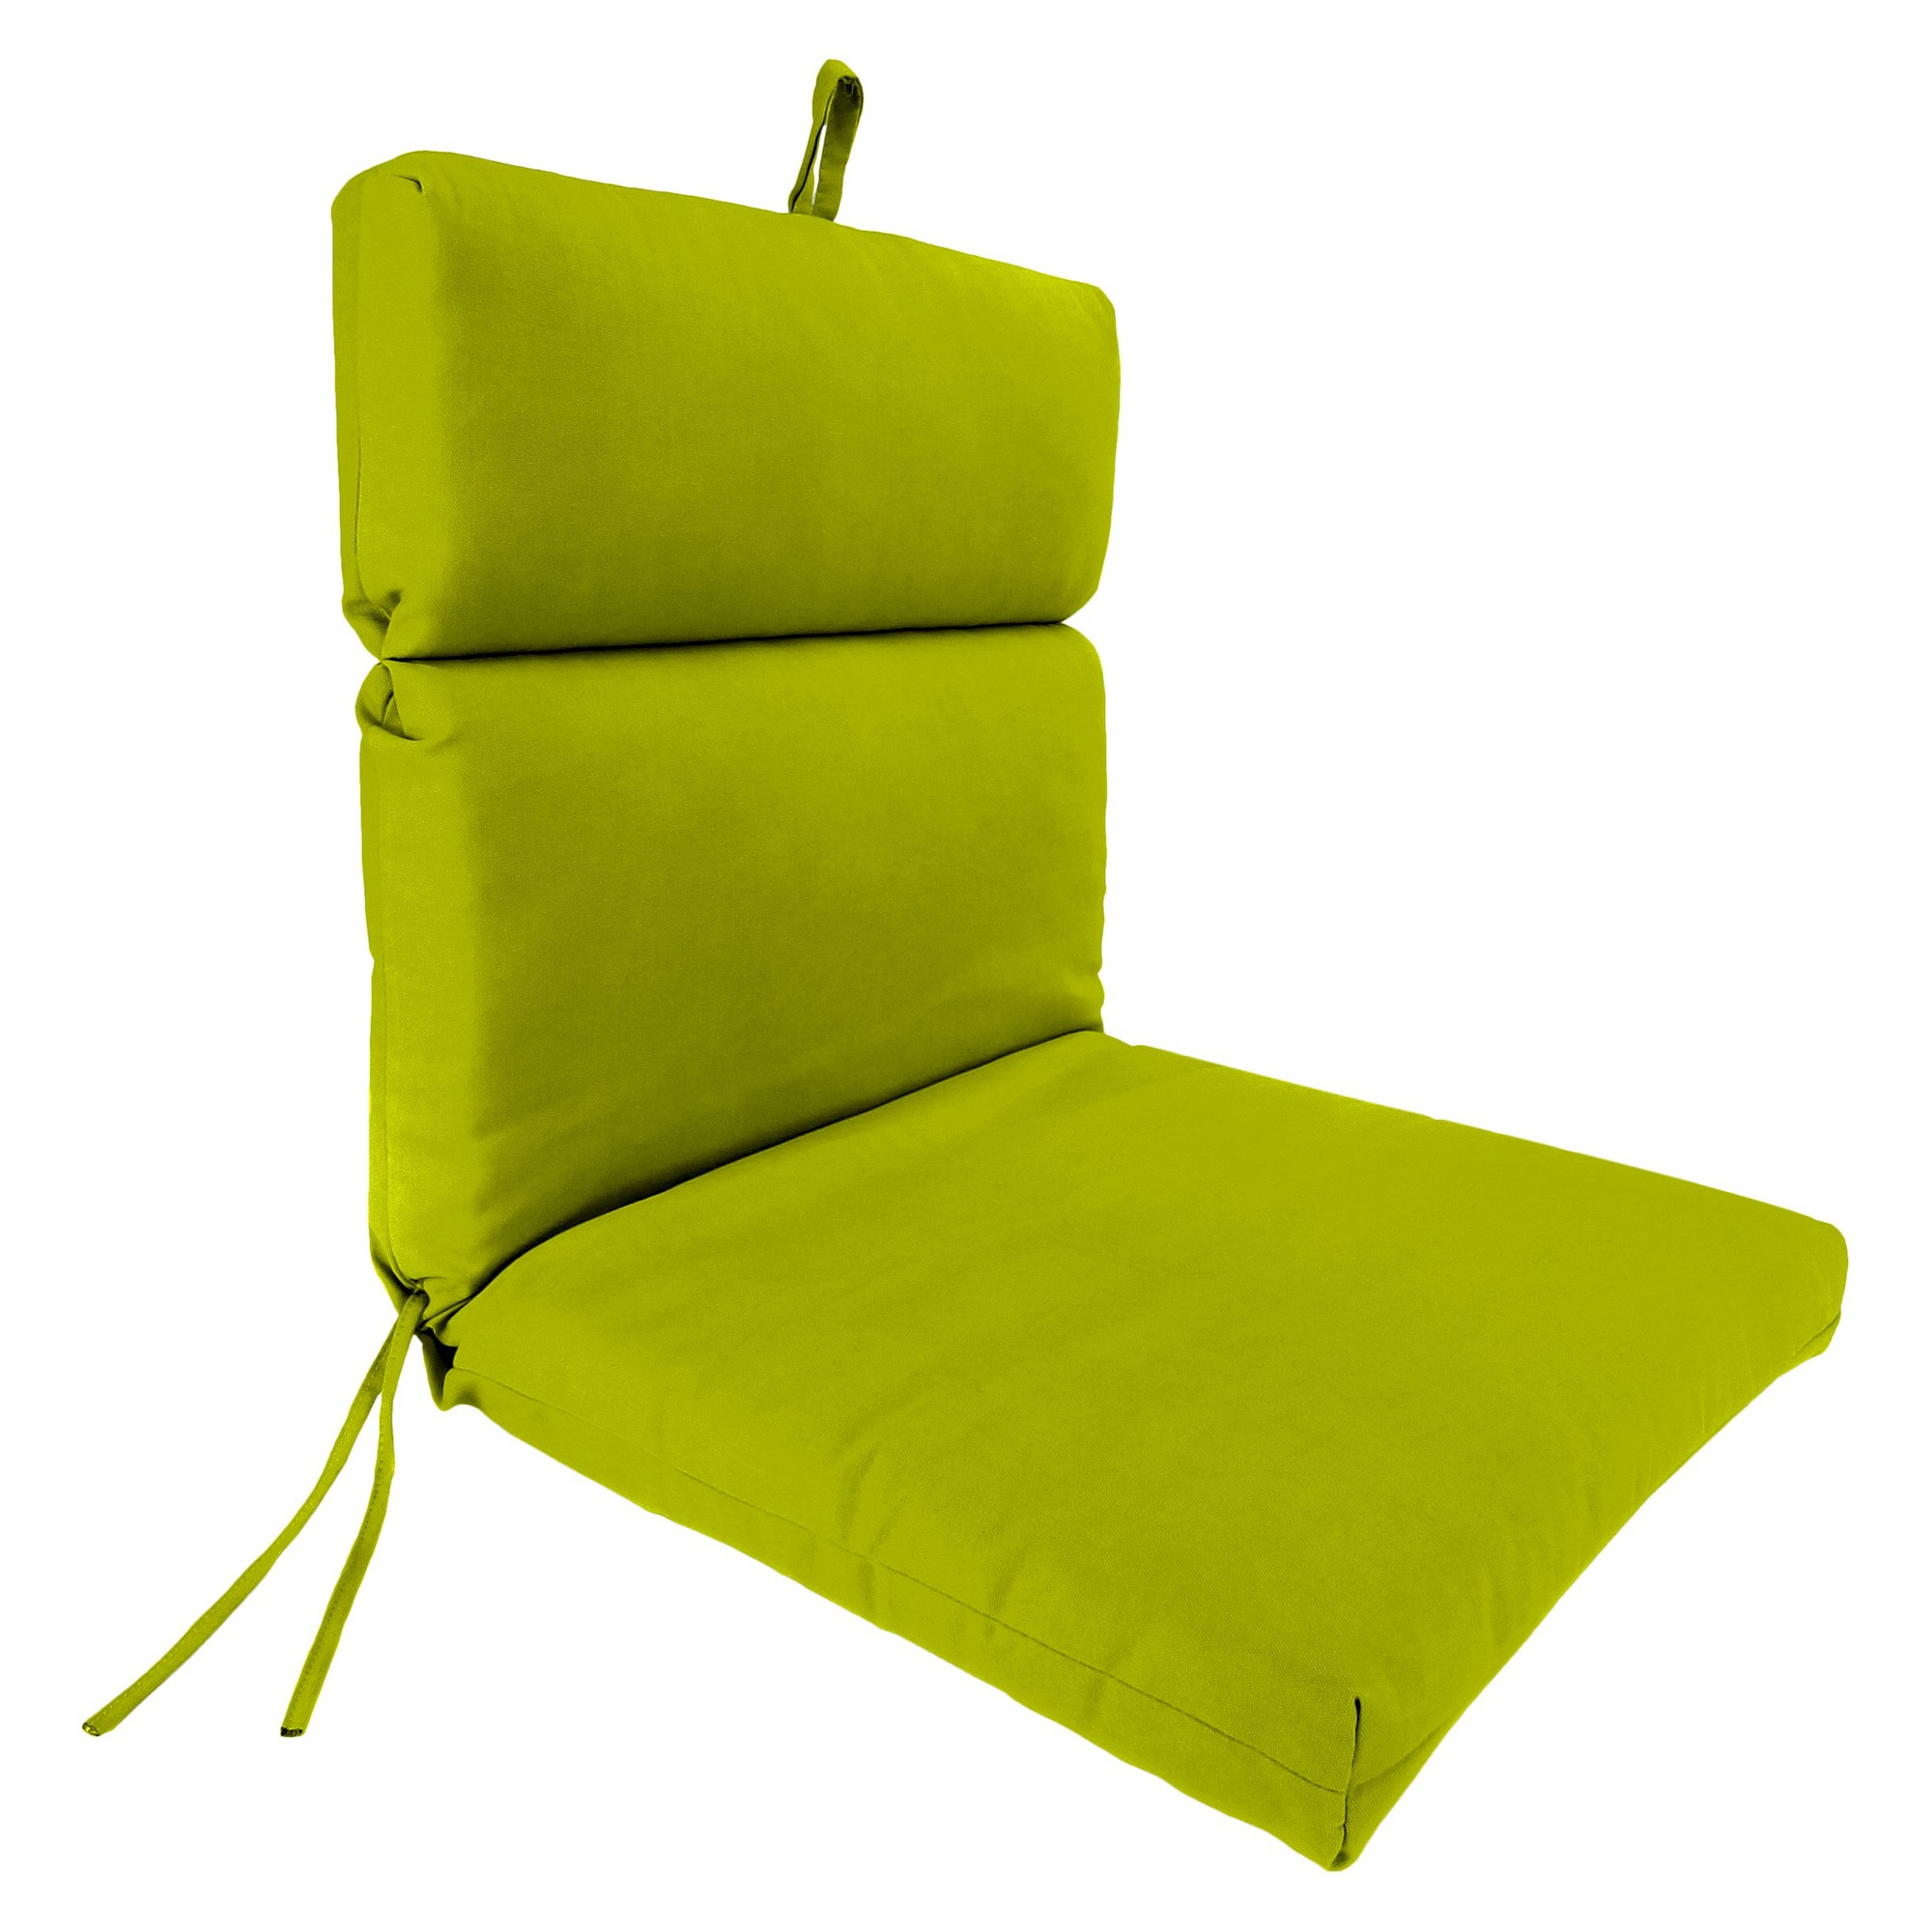 Jordan french edge chair cushion lime zest products